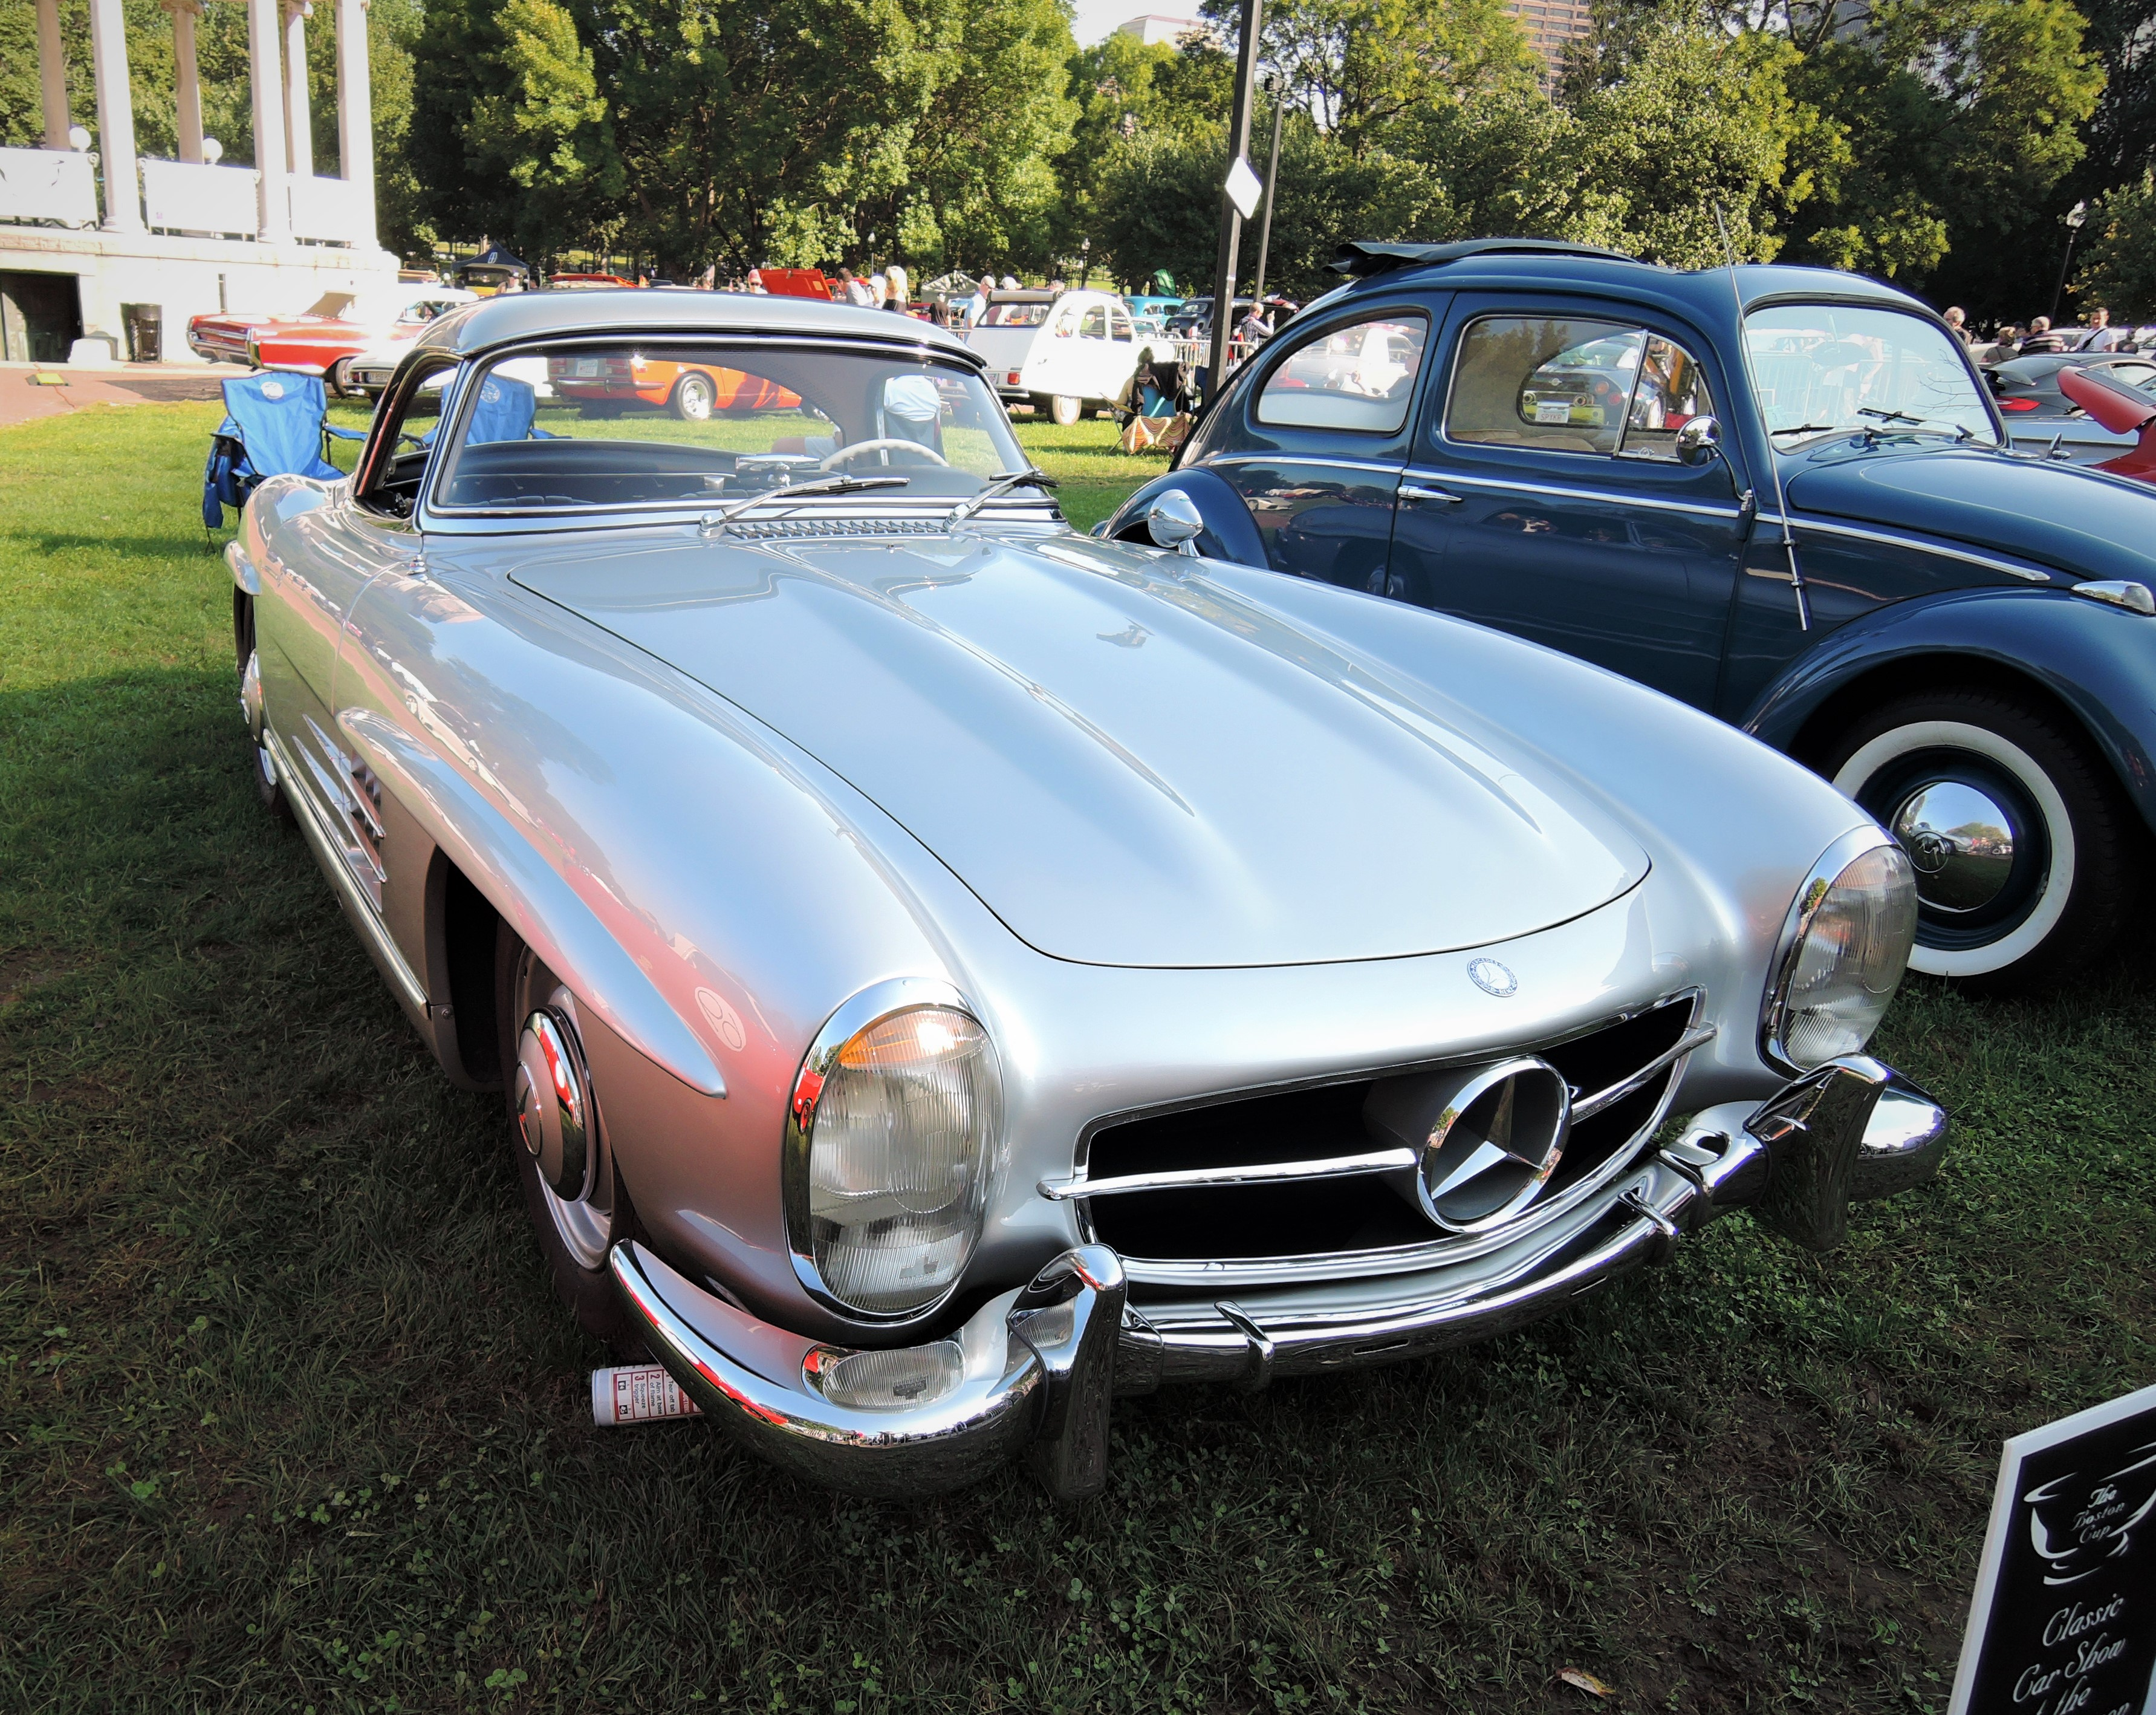 silver 1060 Mercedes-Benz 300 SL Roadster - The Boston Cup 2017